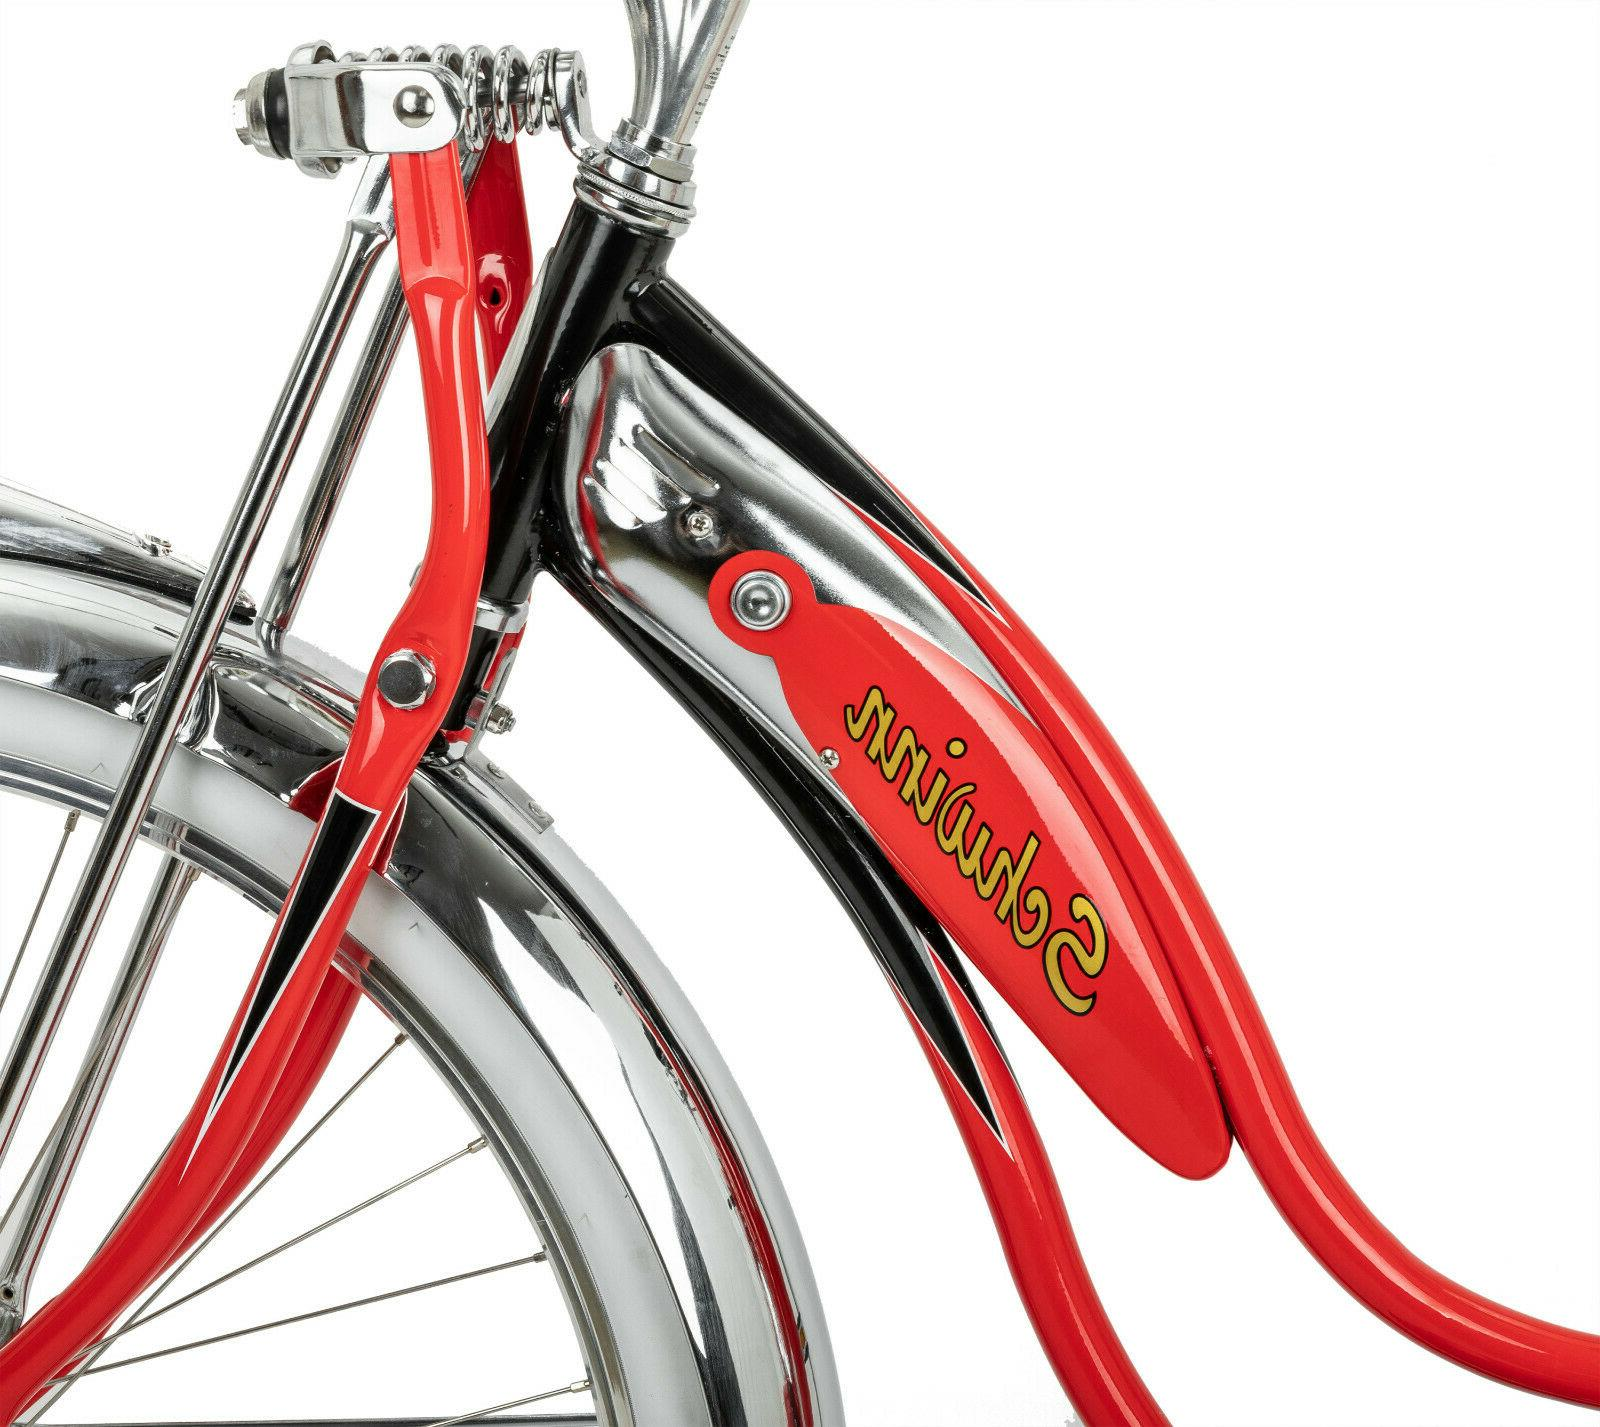 Schwinn Bike, speed, wheels